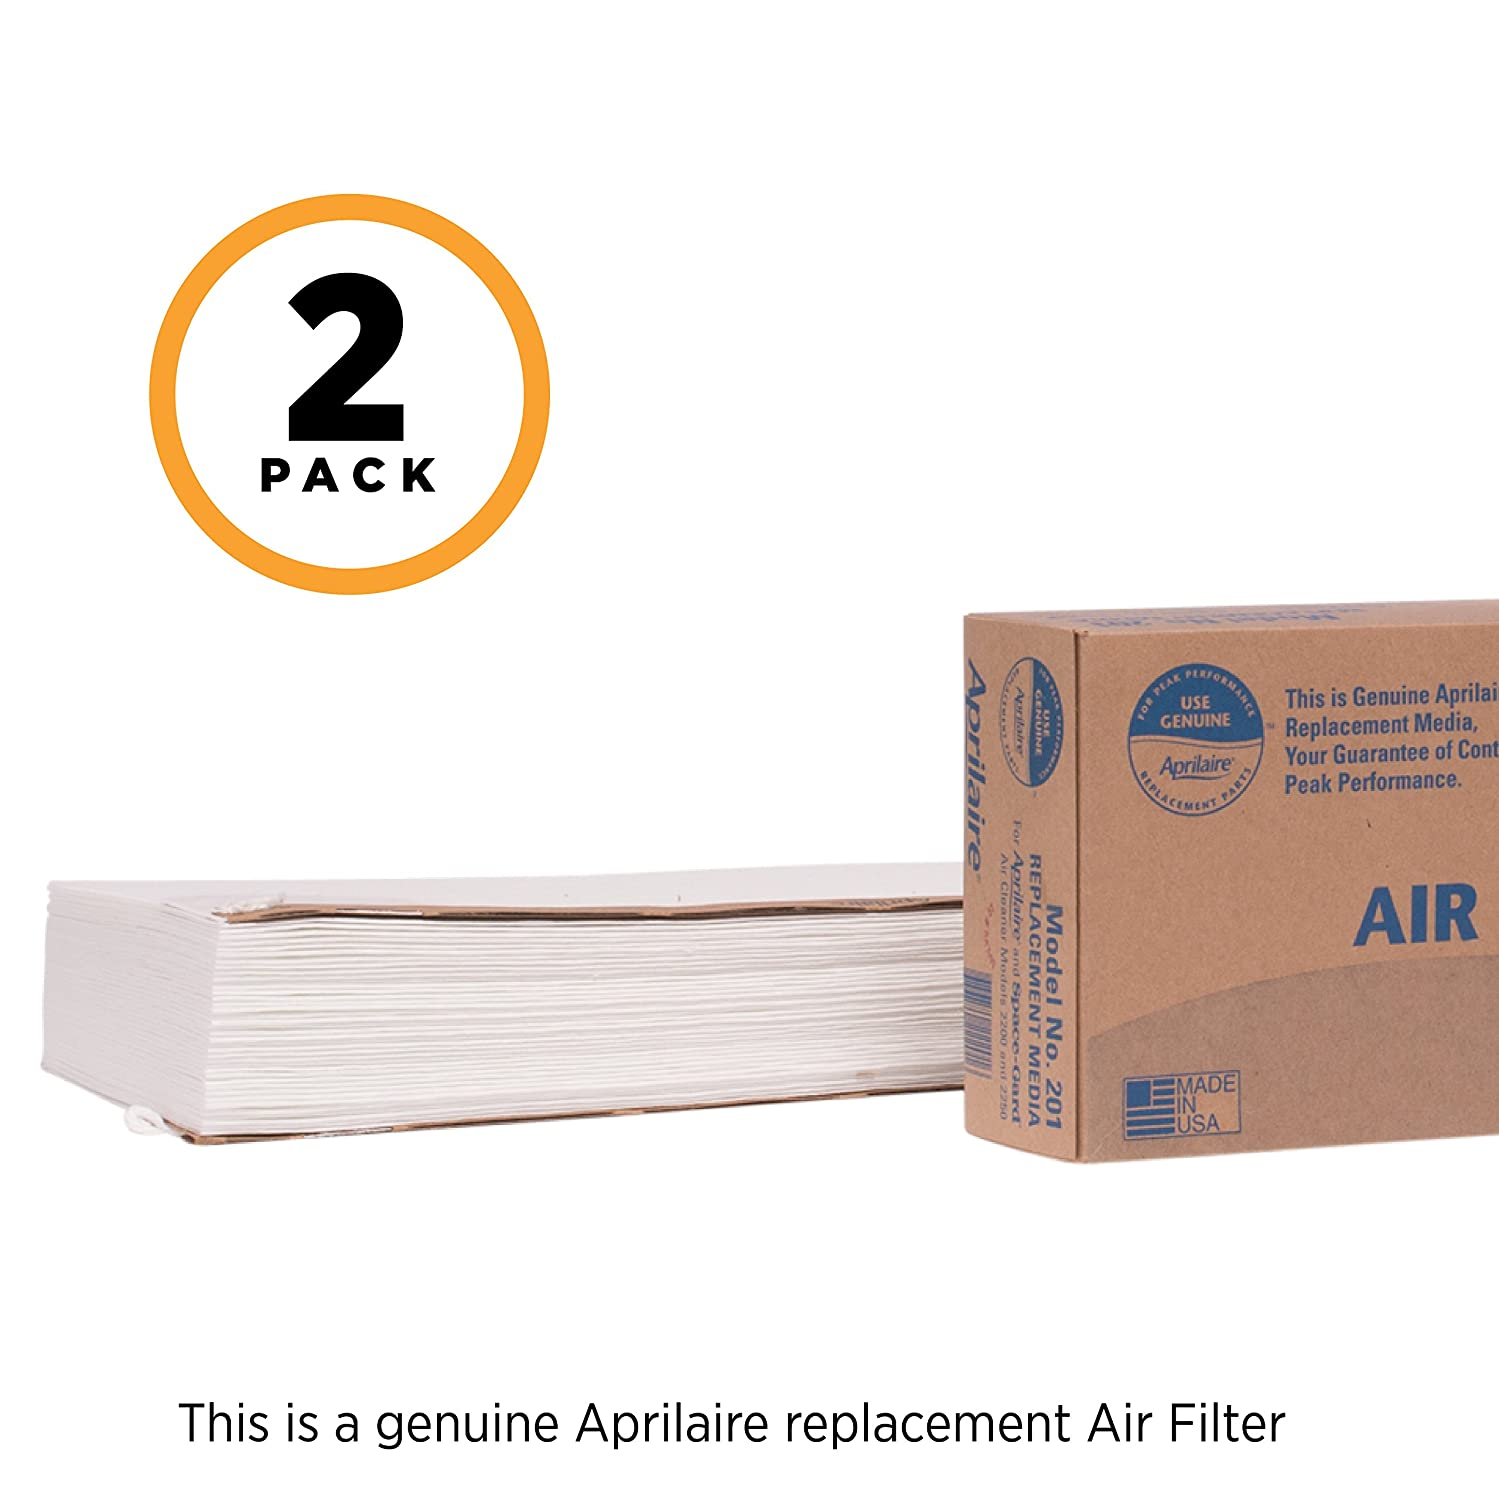 Aprilaire 201 Replacement Filter (Pack of 2) by Aprilaire B009CETDJE